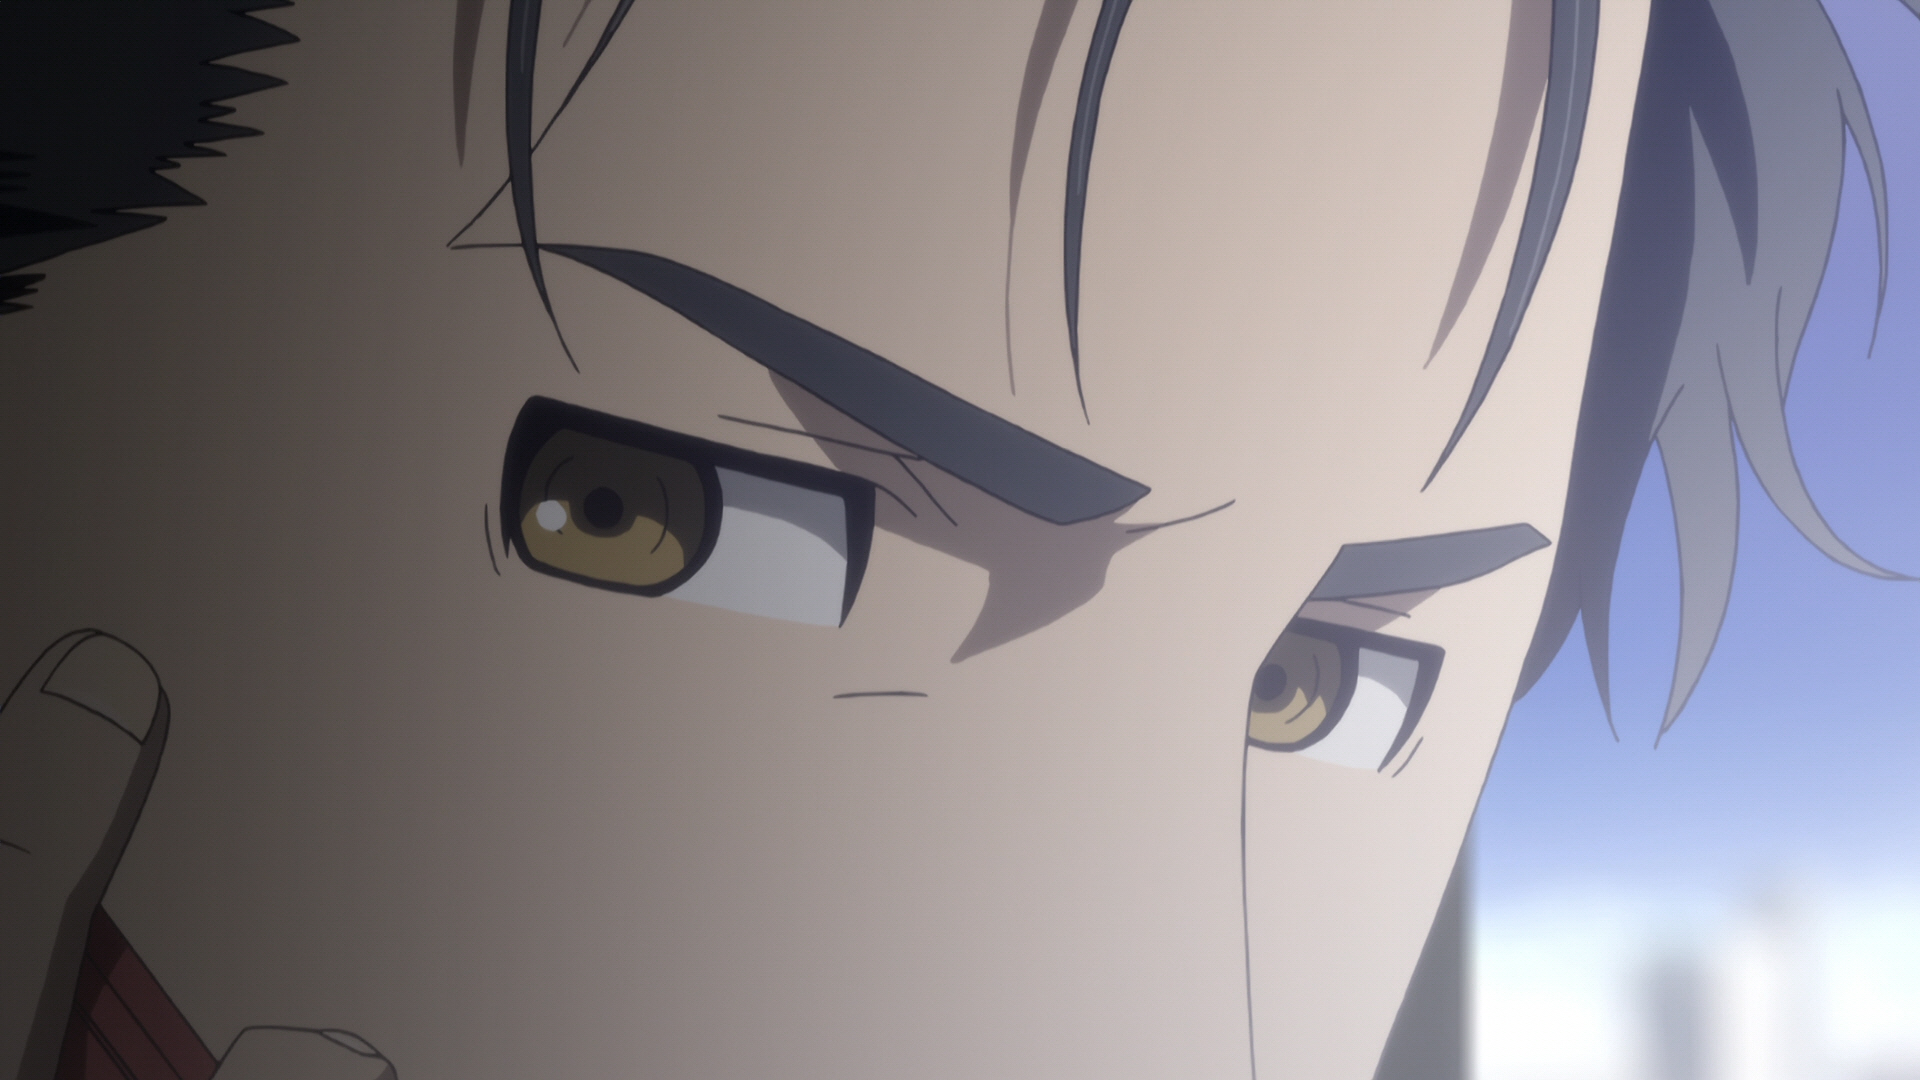 Steins Gate Episode 9 Chaos Theory Homeostasis II 19